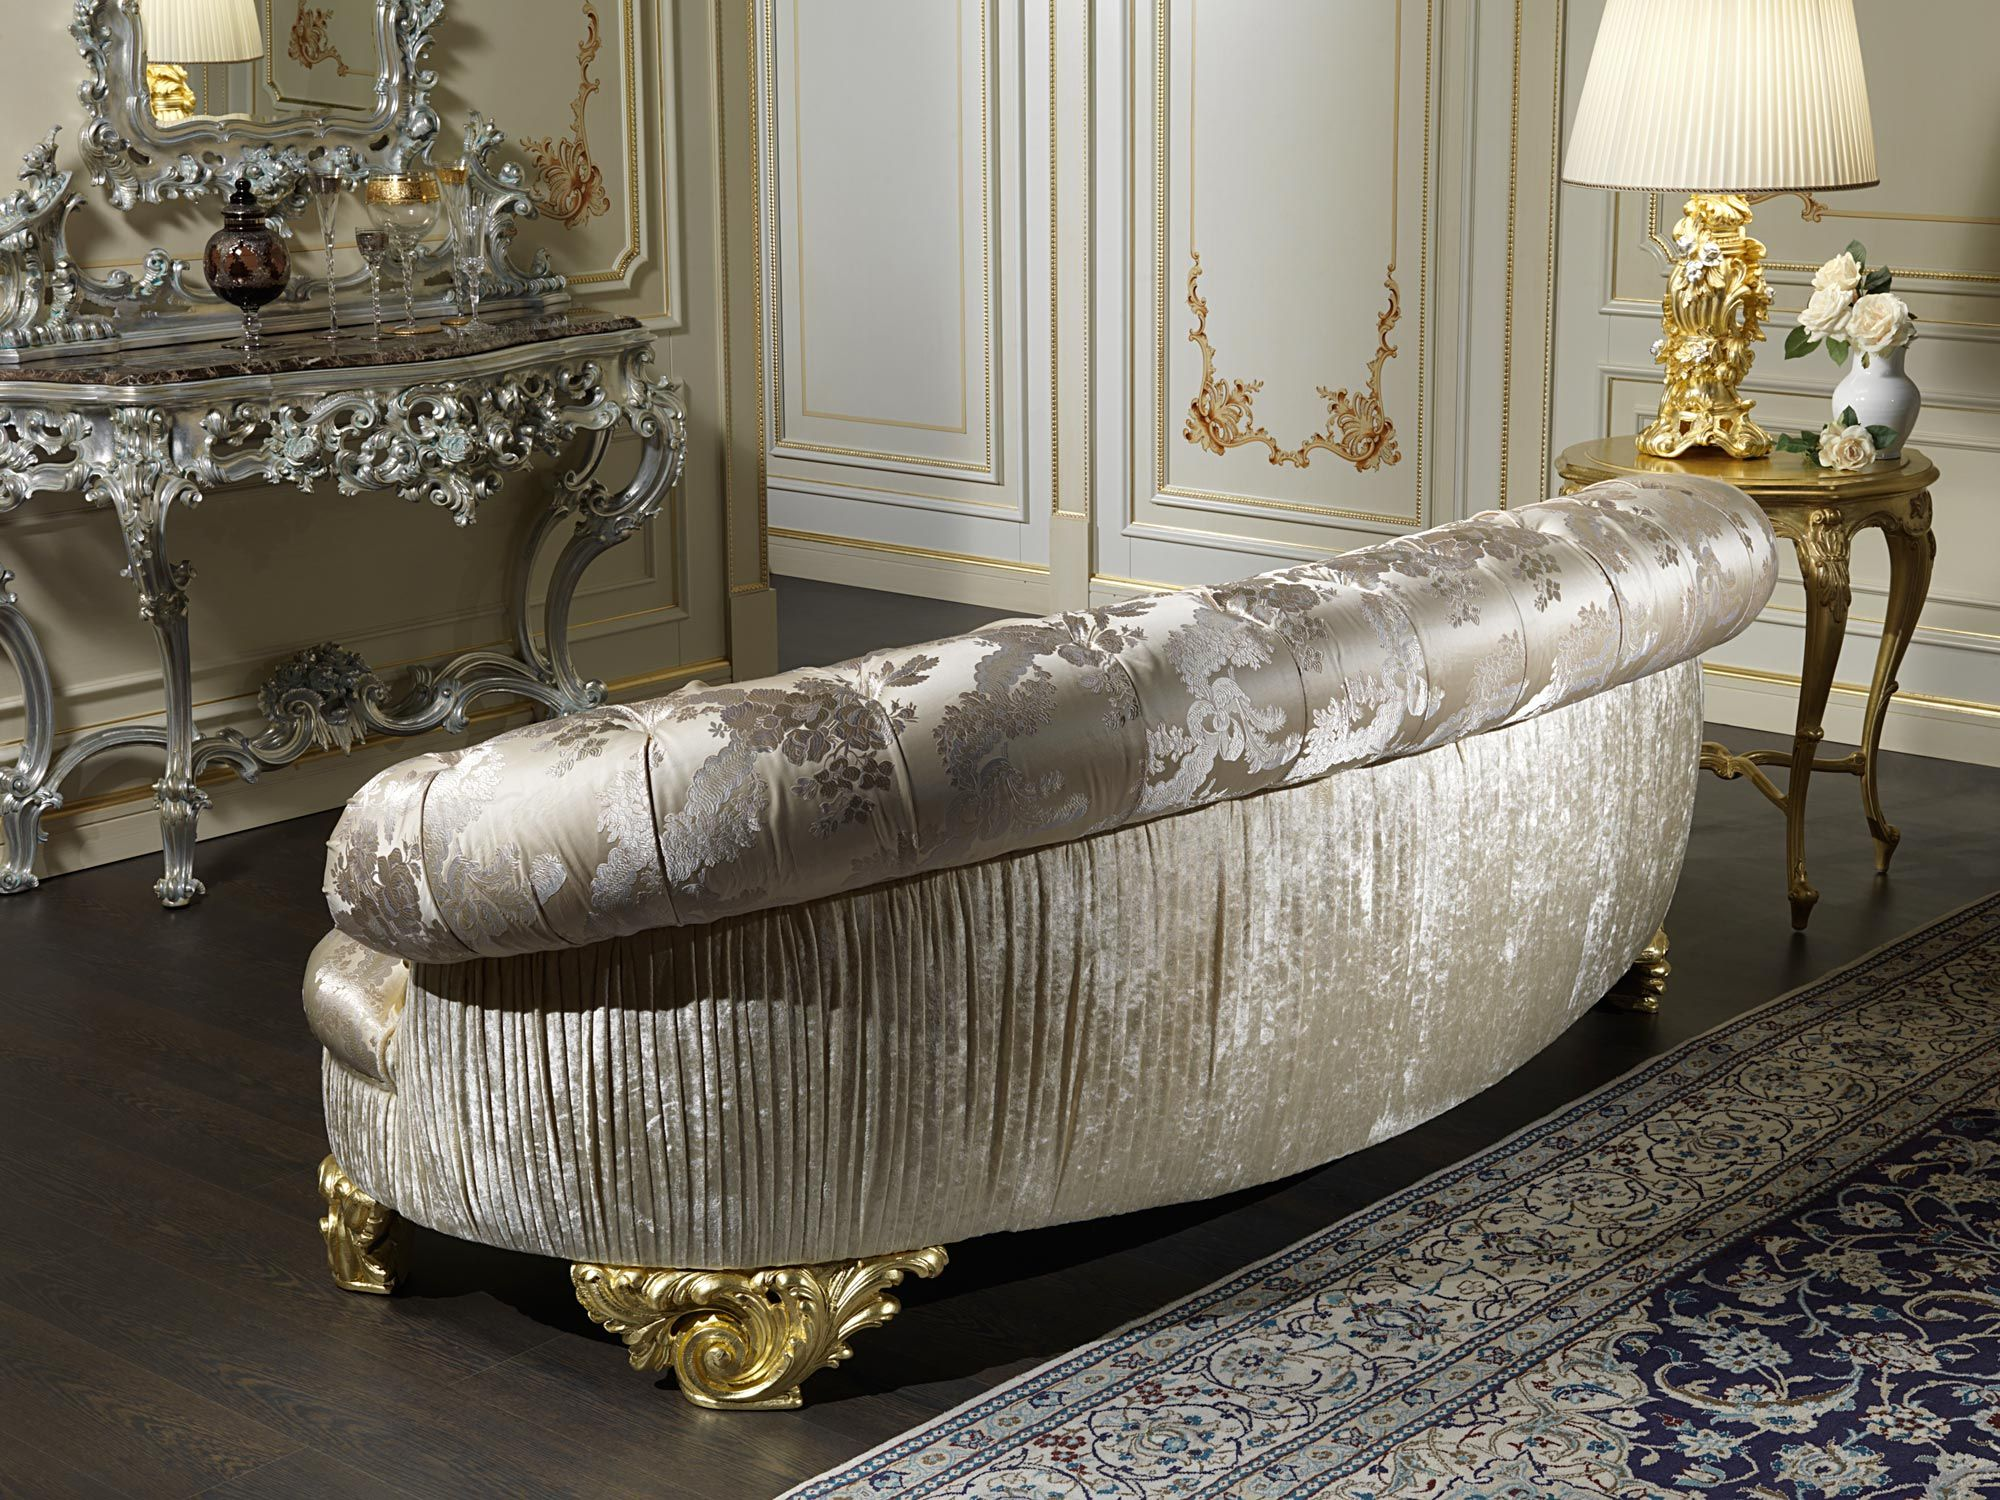 The classic luxury sofa Paris is a creation of Italian